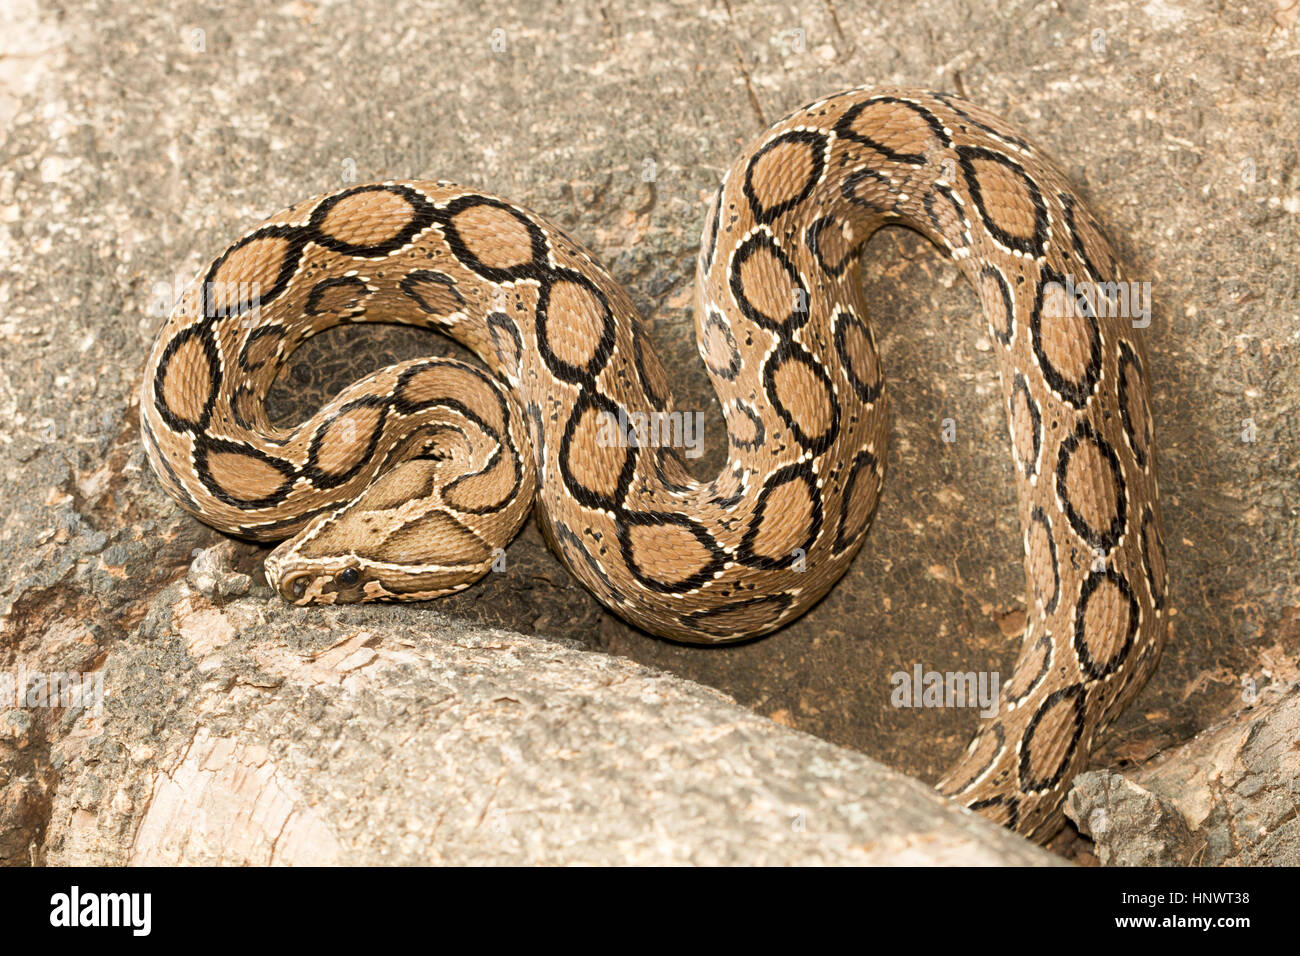 Russell's viper, Daboia russelii, Bangalore, Karnataka. Monotypic genus of venomous Old World vipers. The species Stock Photo